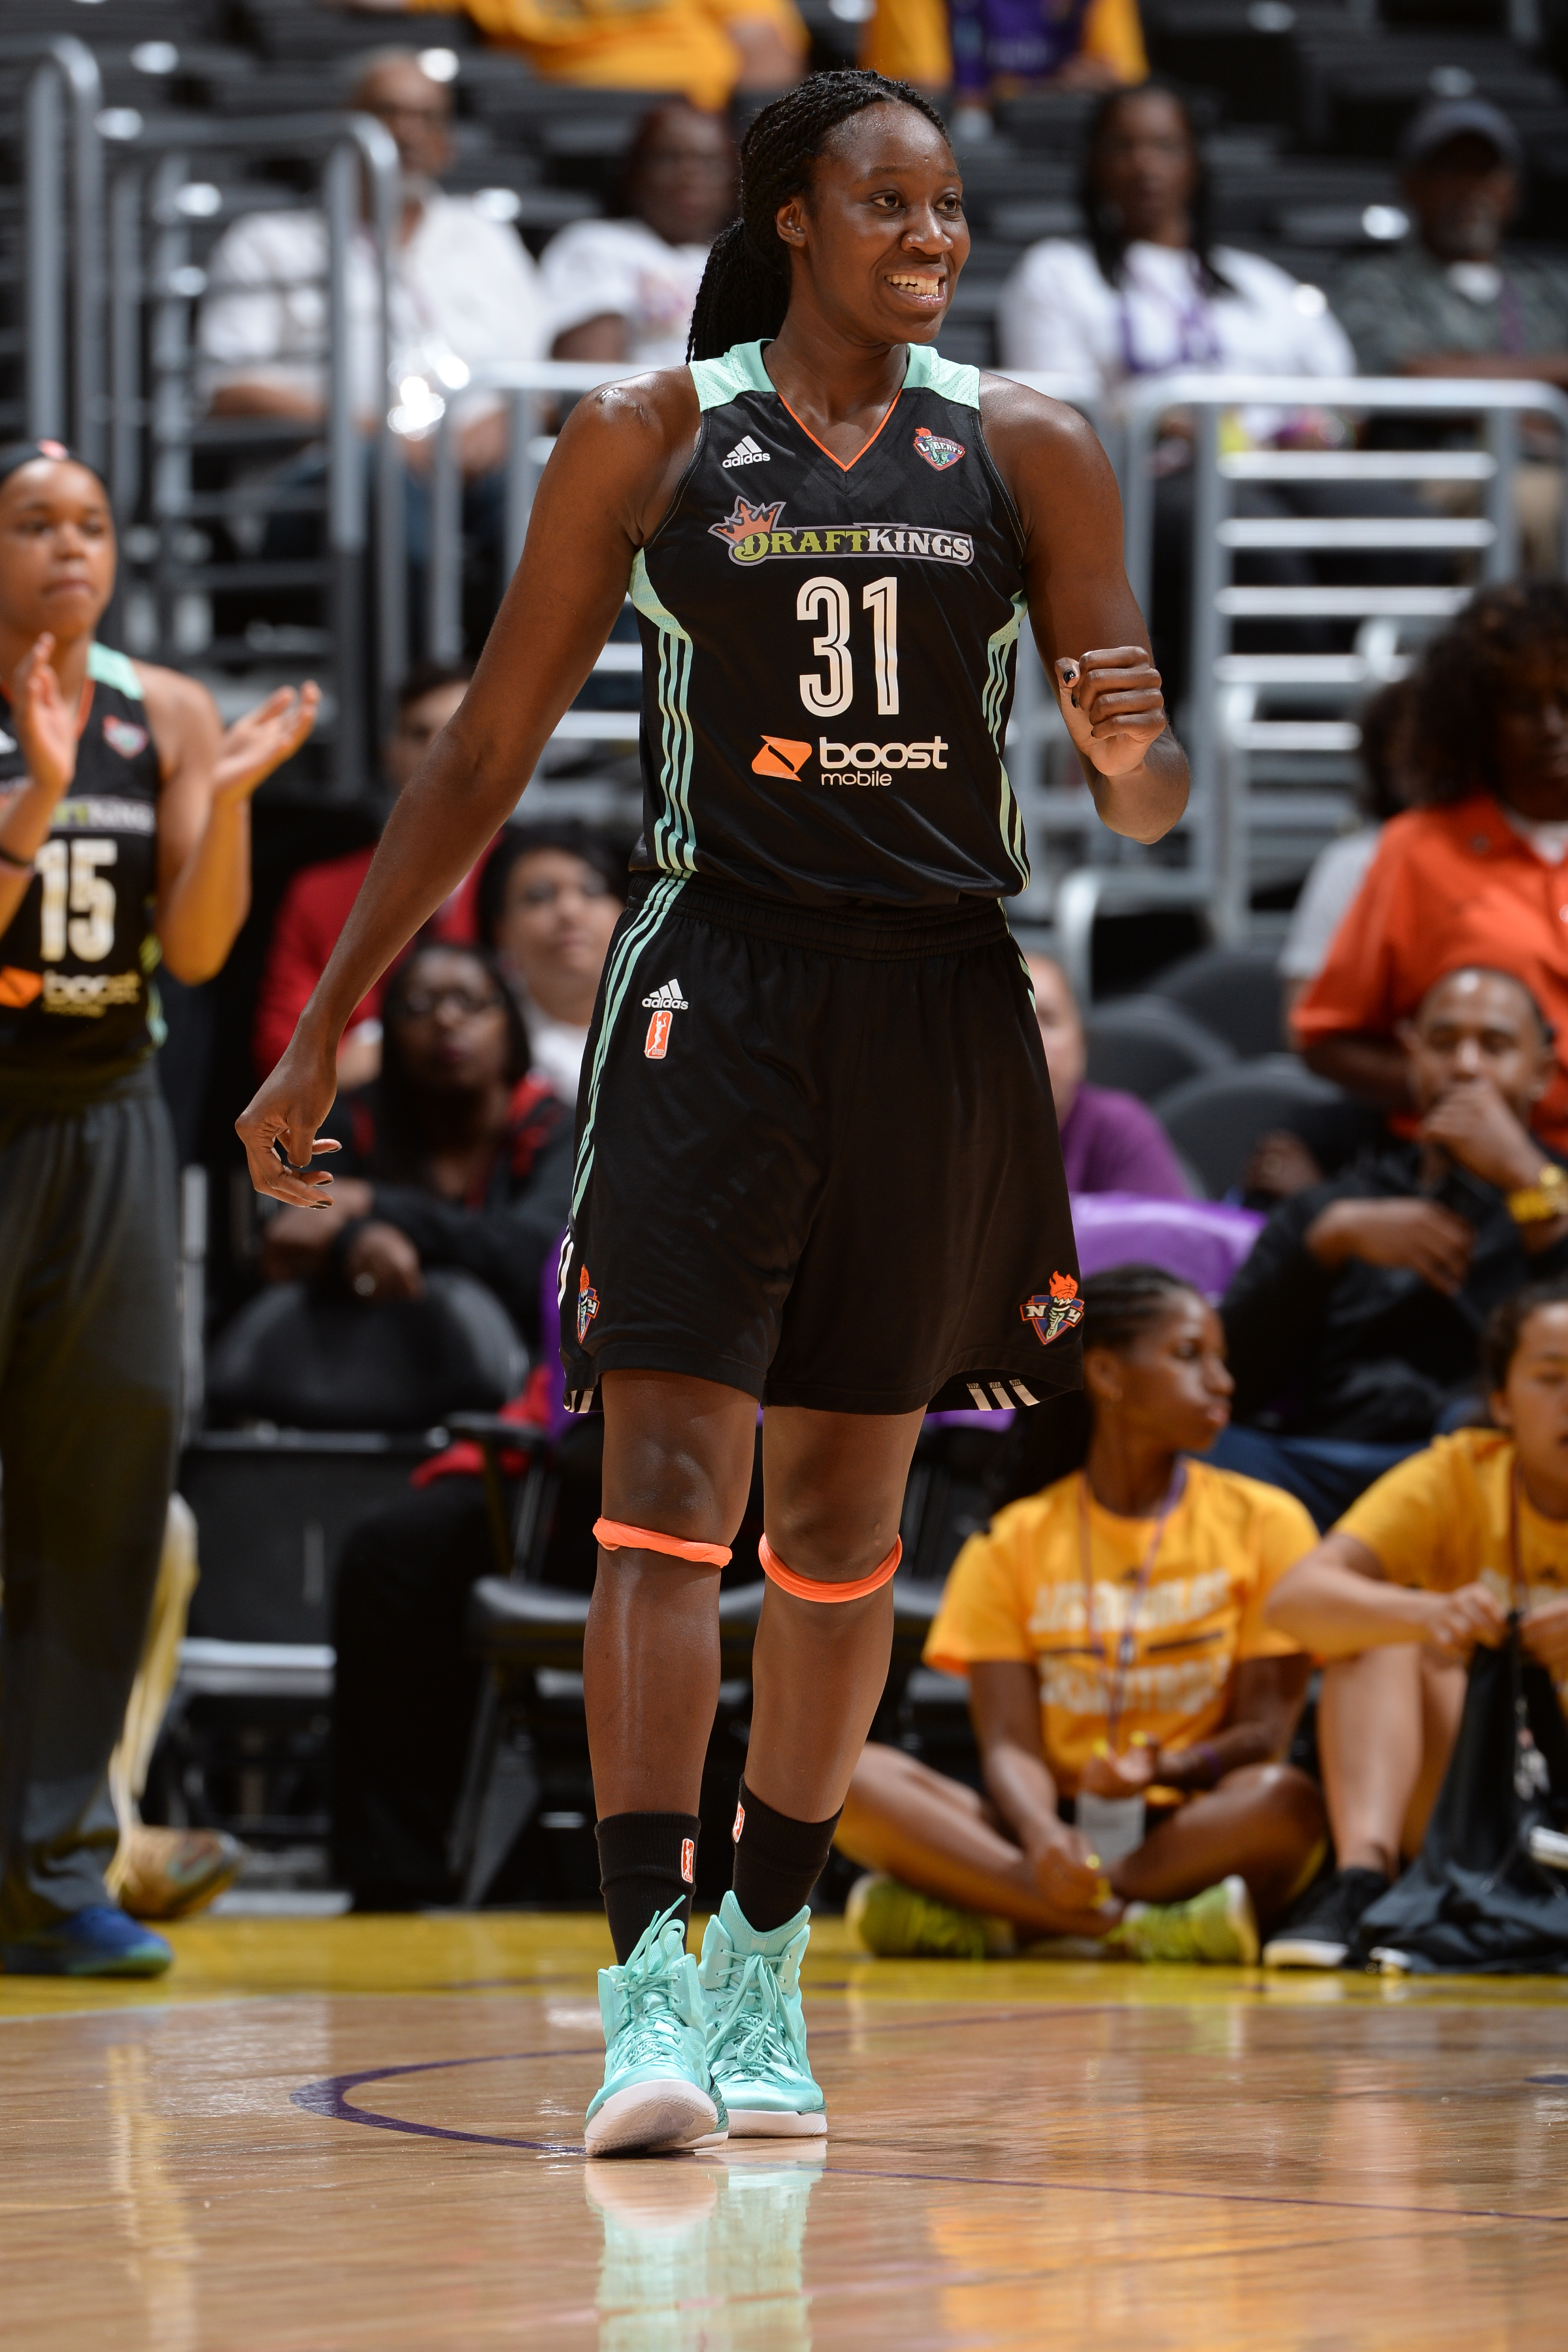 LOS ANGELES, CA - JULY 22:  Tina Charles #31 of the New York Liberty during the game against the Los Angeles Sparks on July 22, 2015 at Staples Center in Los Angeles, California. (Photo by Andrew D. Bernstein/NBAE via Getty Images)